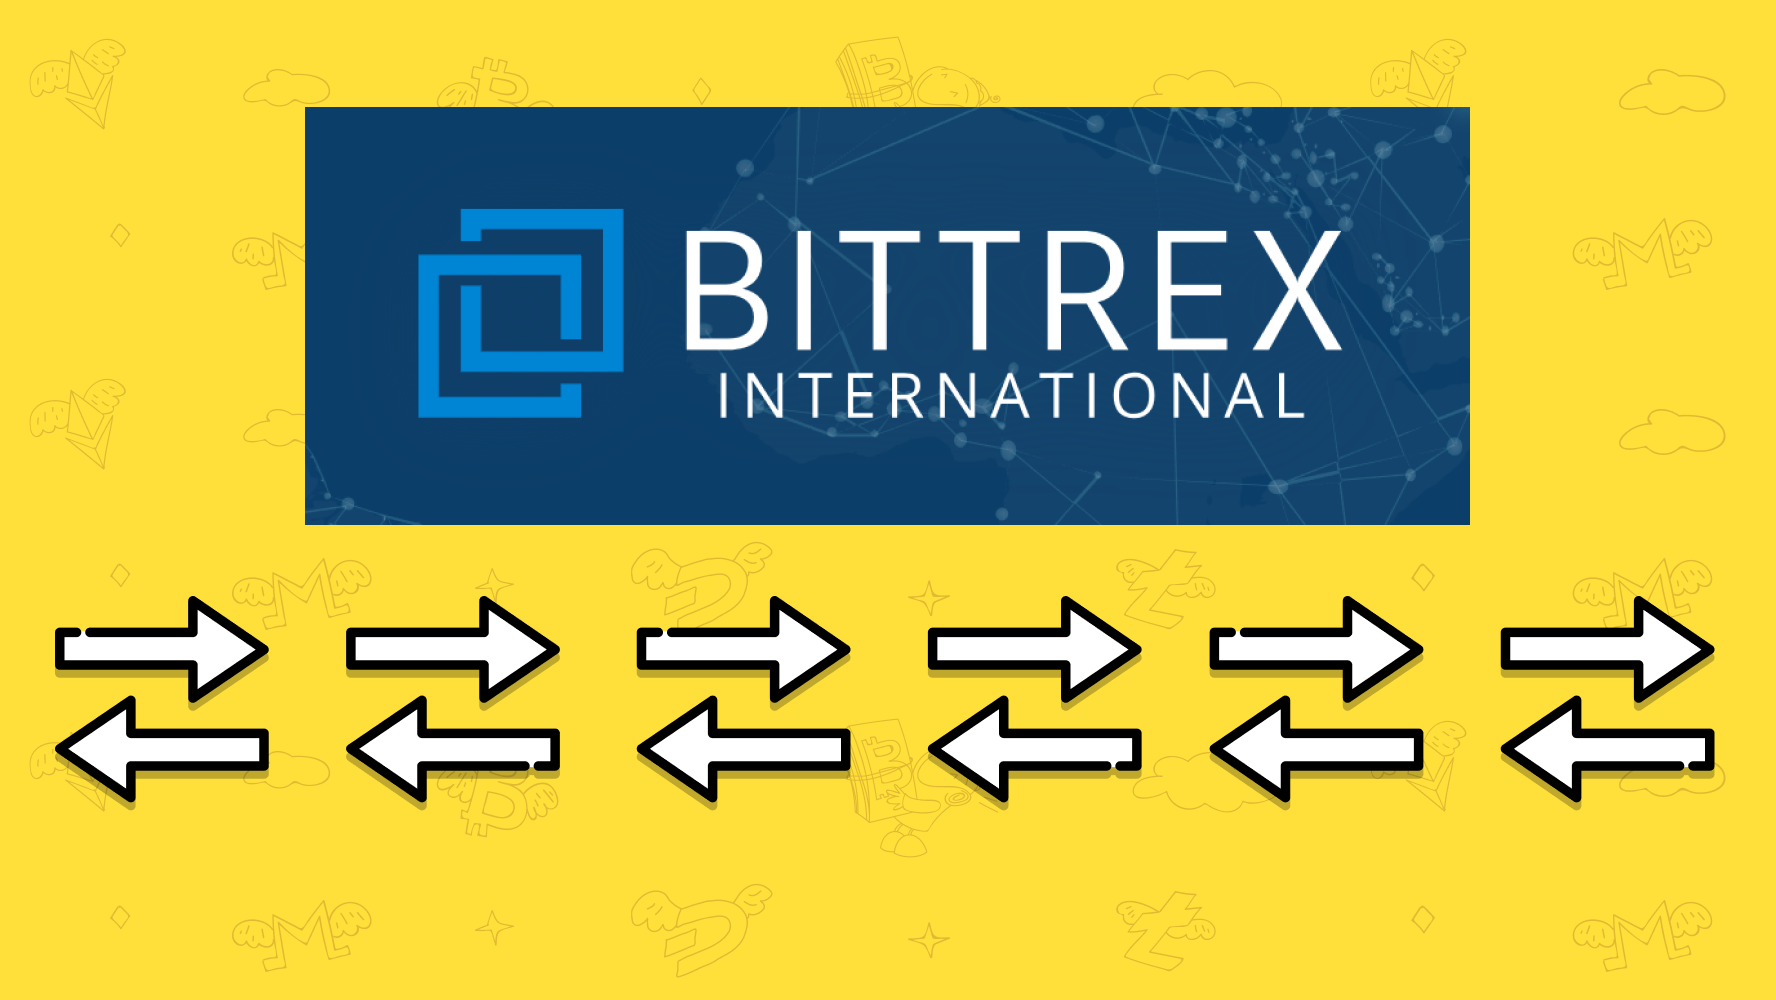 Bittrex: Fees for Trading, Deposits, Withdrawals, Bittrex